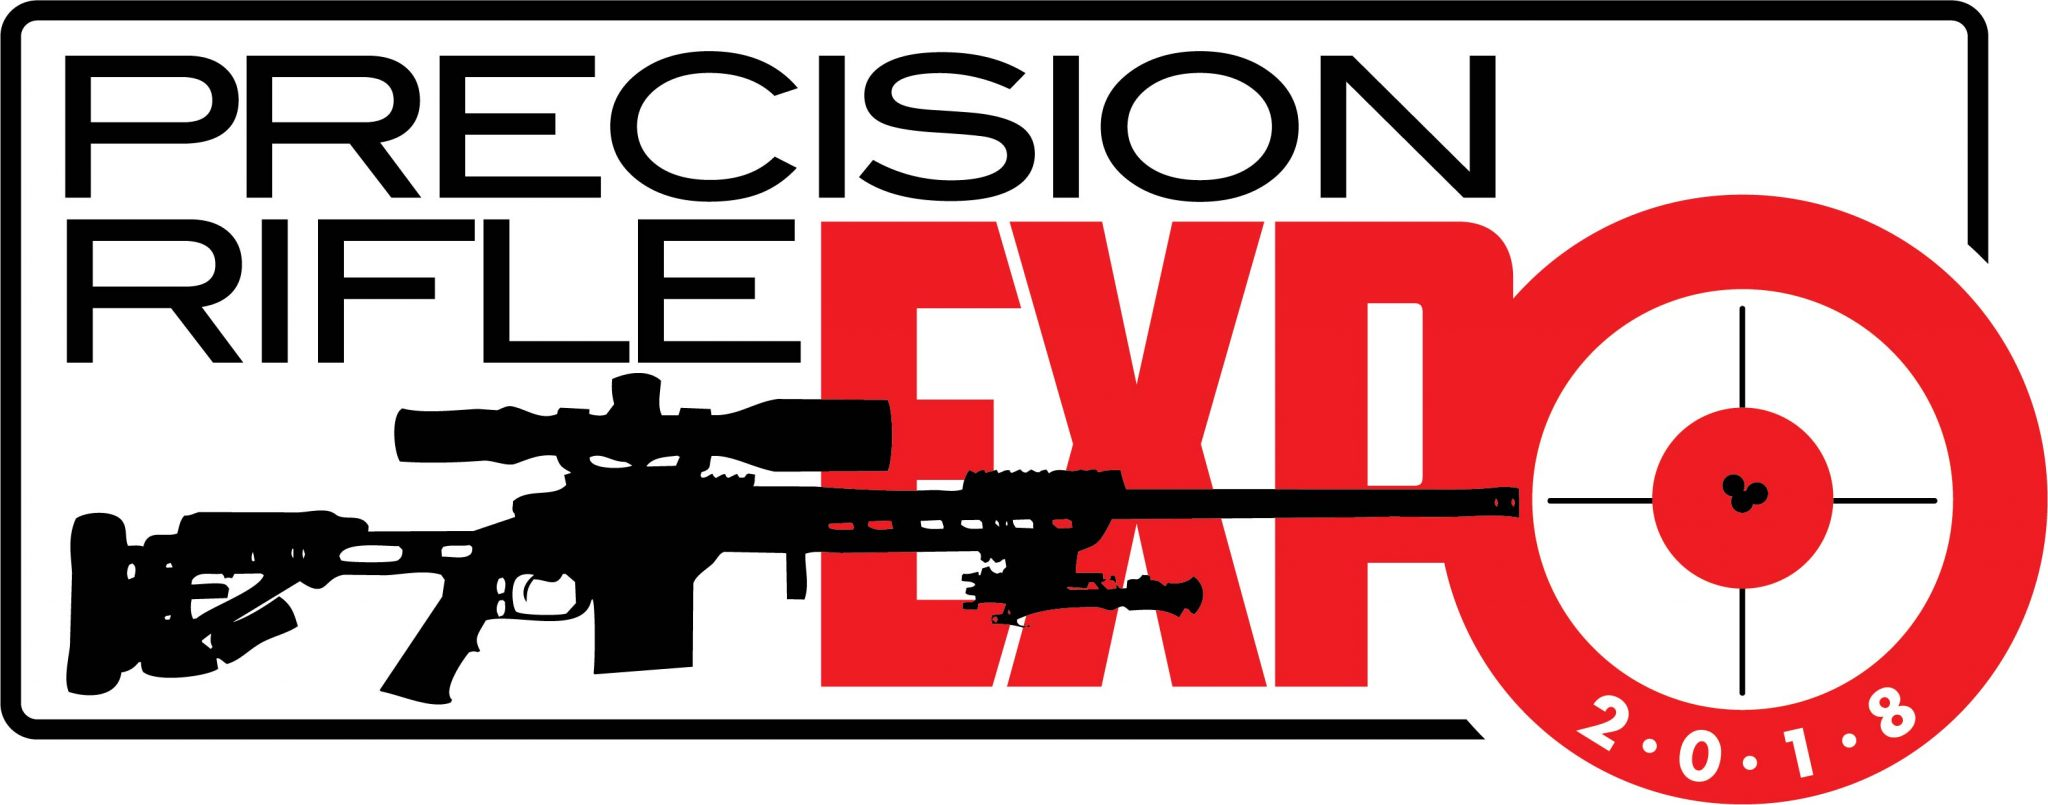 The 1st Annual Precision Rifle Expo Features Top Companies and Talent in Long-Range Precision Shooting Market